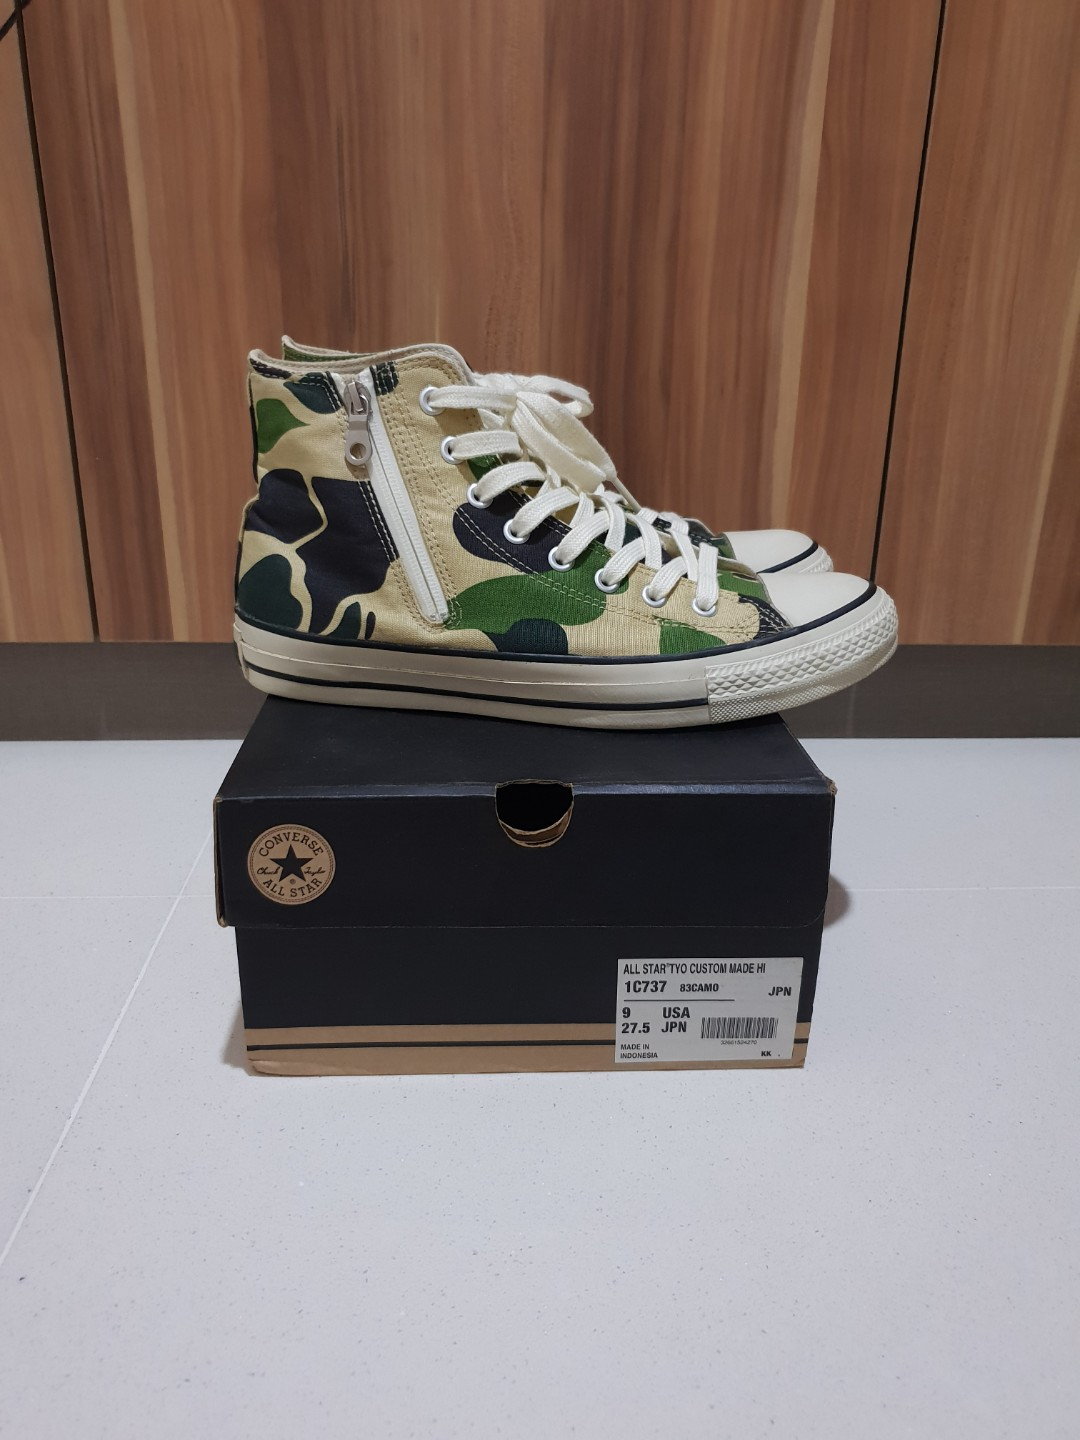 891e5abafca4de mita sneakers x Converse All Star TYO Custom Made Hi